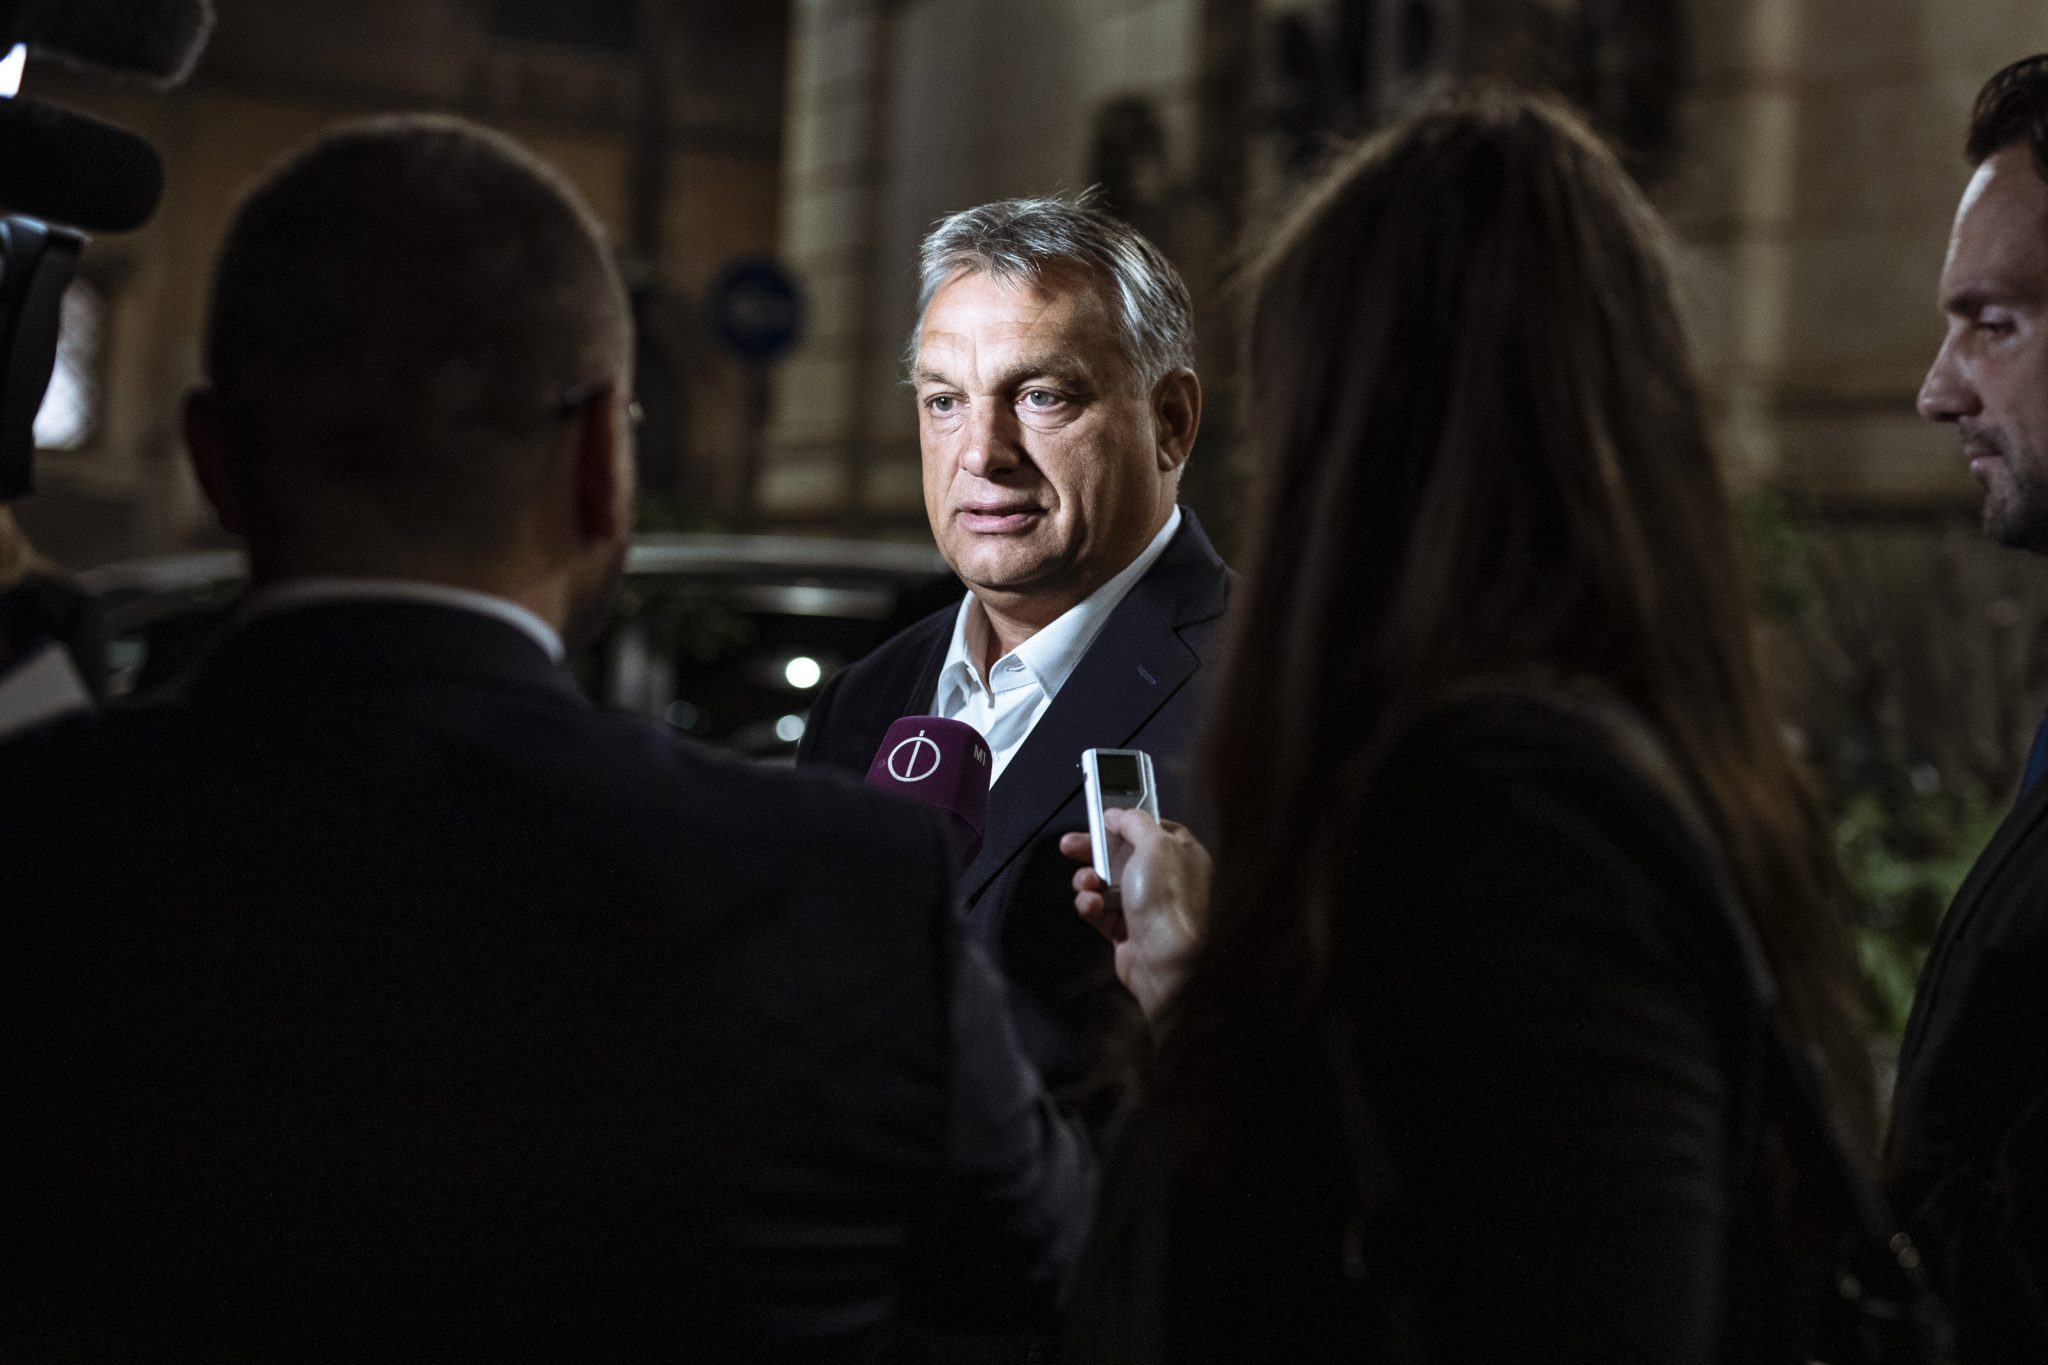 Orbán on Fidesz EPP Membership: 'We Will Decide in a Few Weeks' post's picture